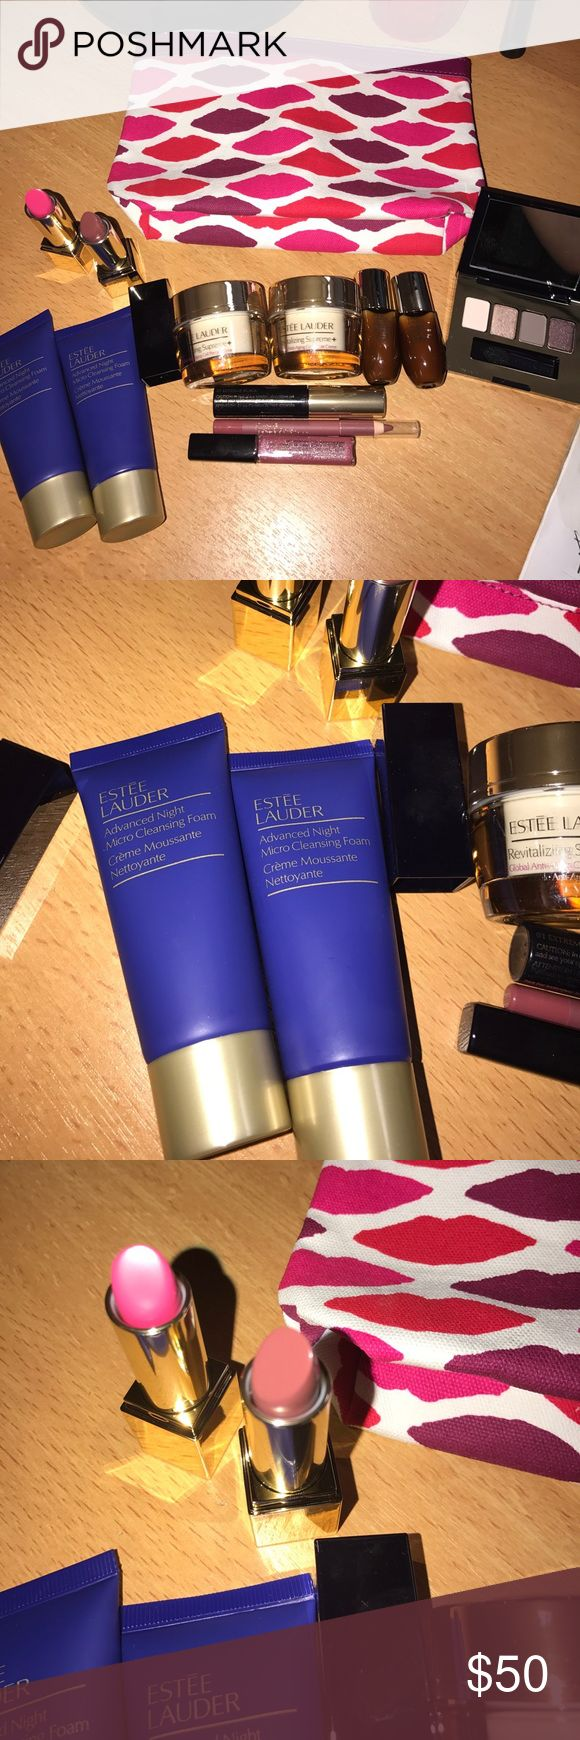 Estée Lauder 12 piece bundle!! NWT. Brand new. Never opened or used. Free gift with every purchase!  Bundle and save 30 percent!!!!!  Offers always welcome. No trades. Happy shopping 🛒 poshers!!! Estee Lauder Makeup